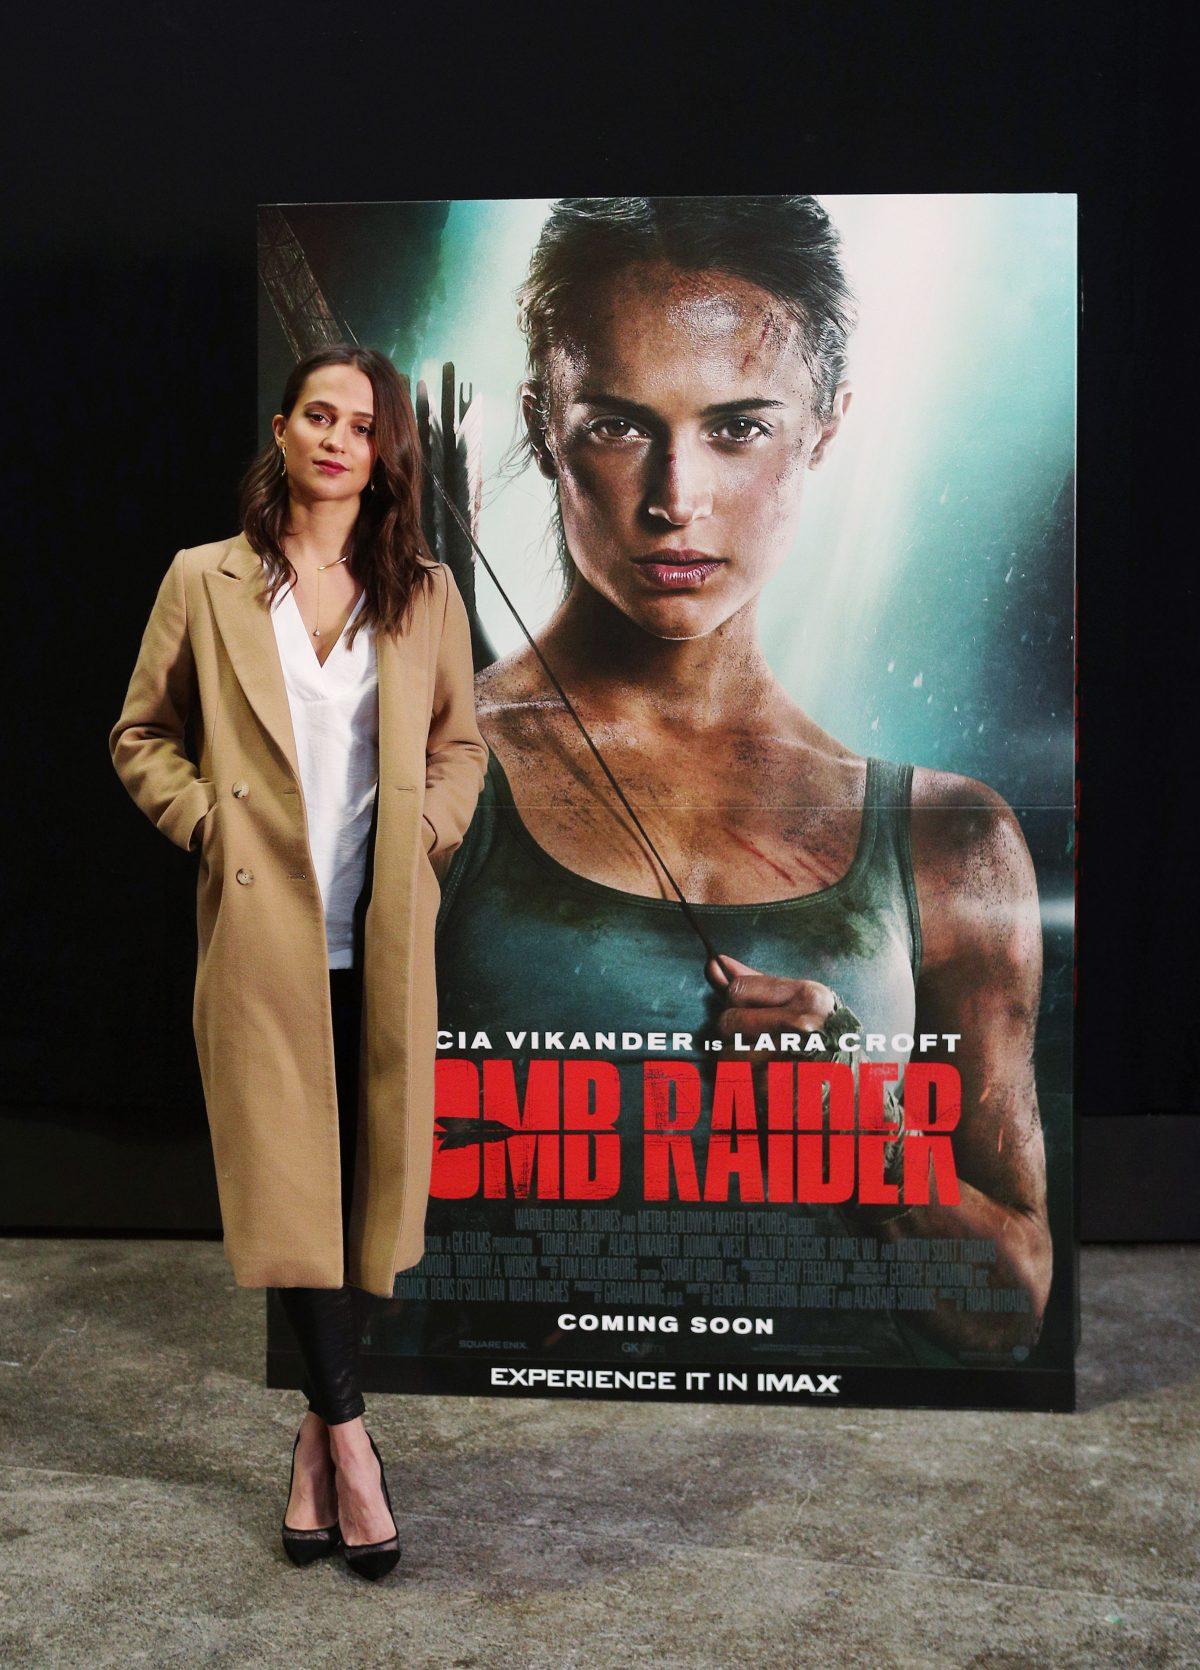 With the latest incarnation of #LaraCroft and #TombRaider heading to the big screens on the 15th March, we've got six, yes you read that right, six clips from the upcoming #movie that is based on the ever-popular Tomb Raider #videogame franchise.